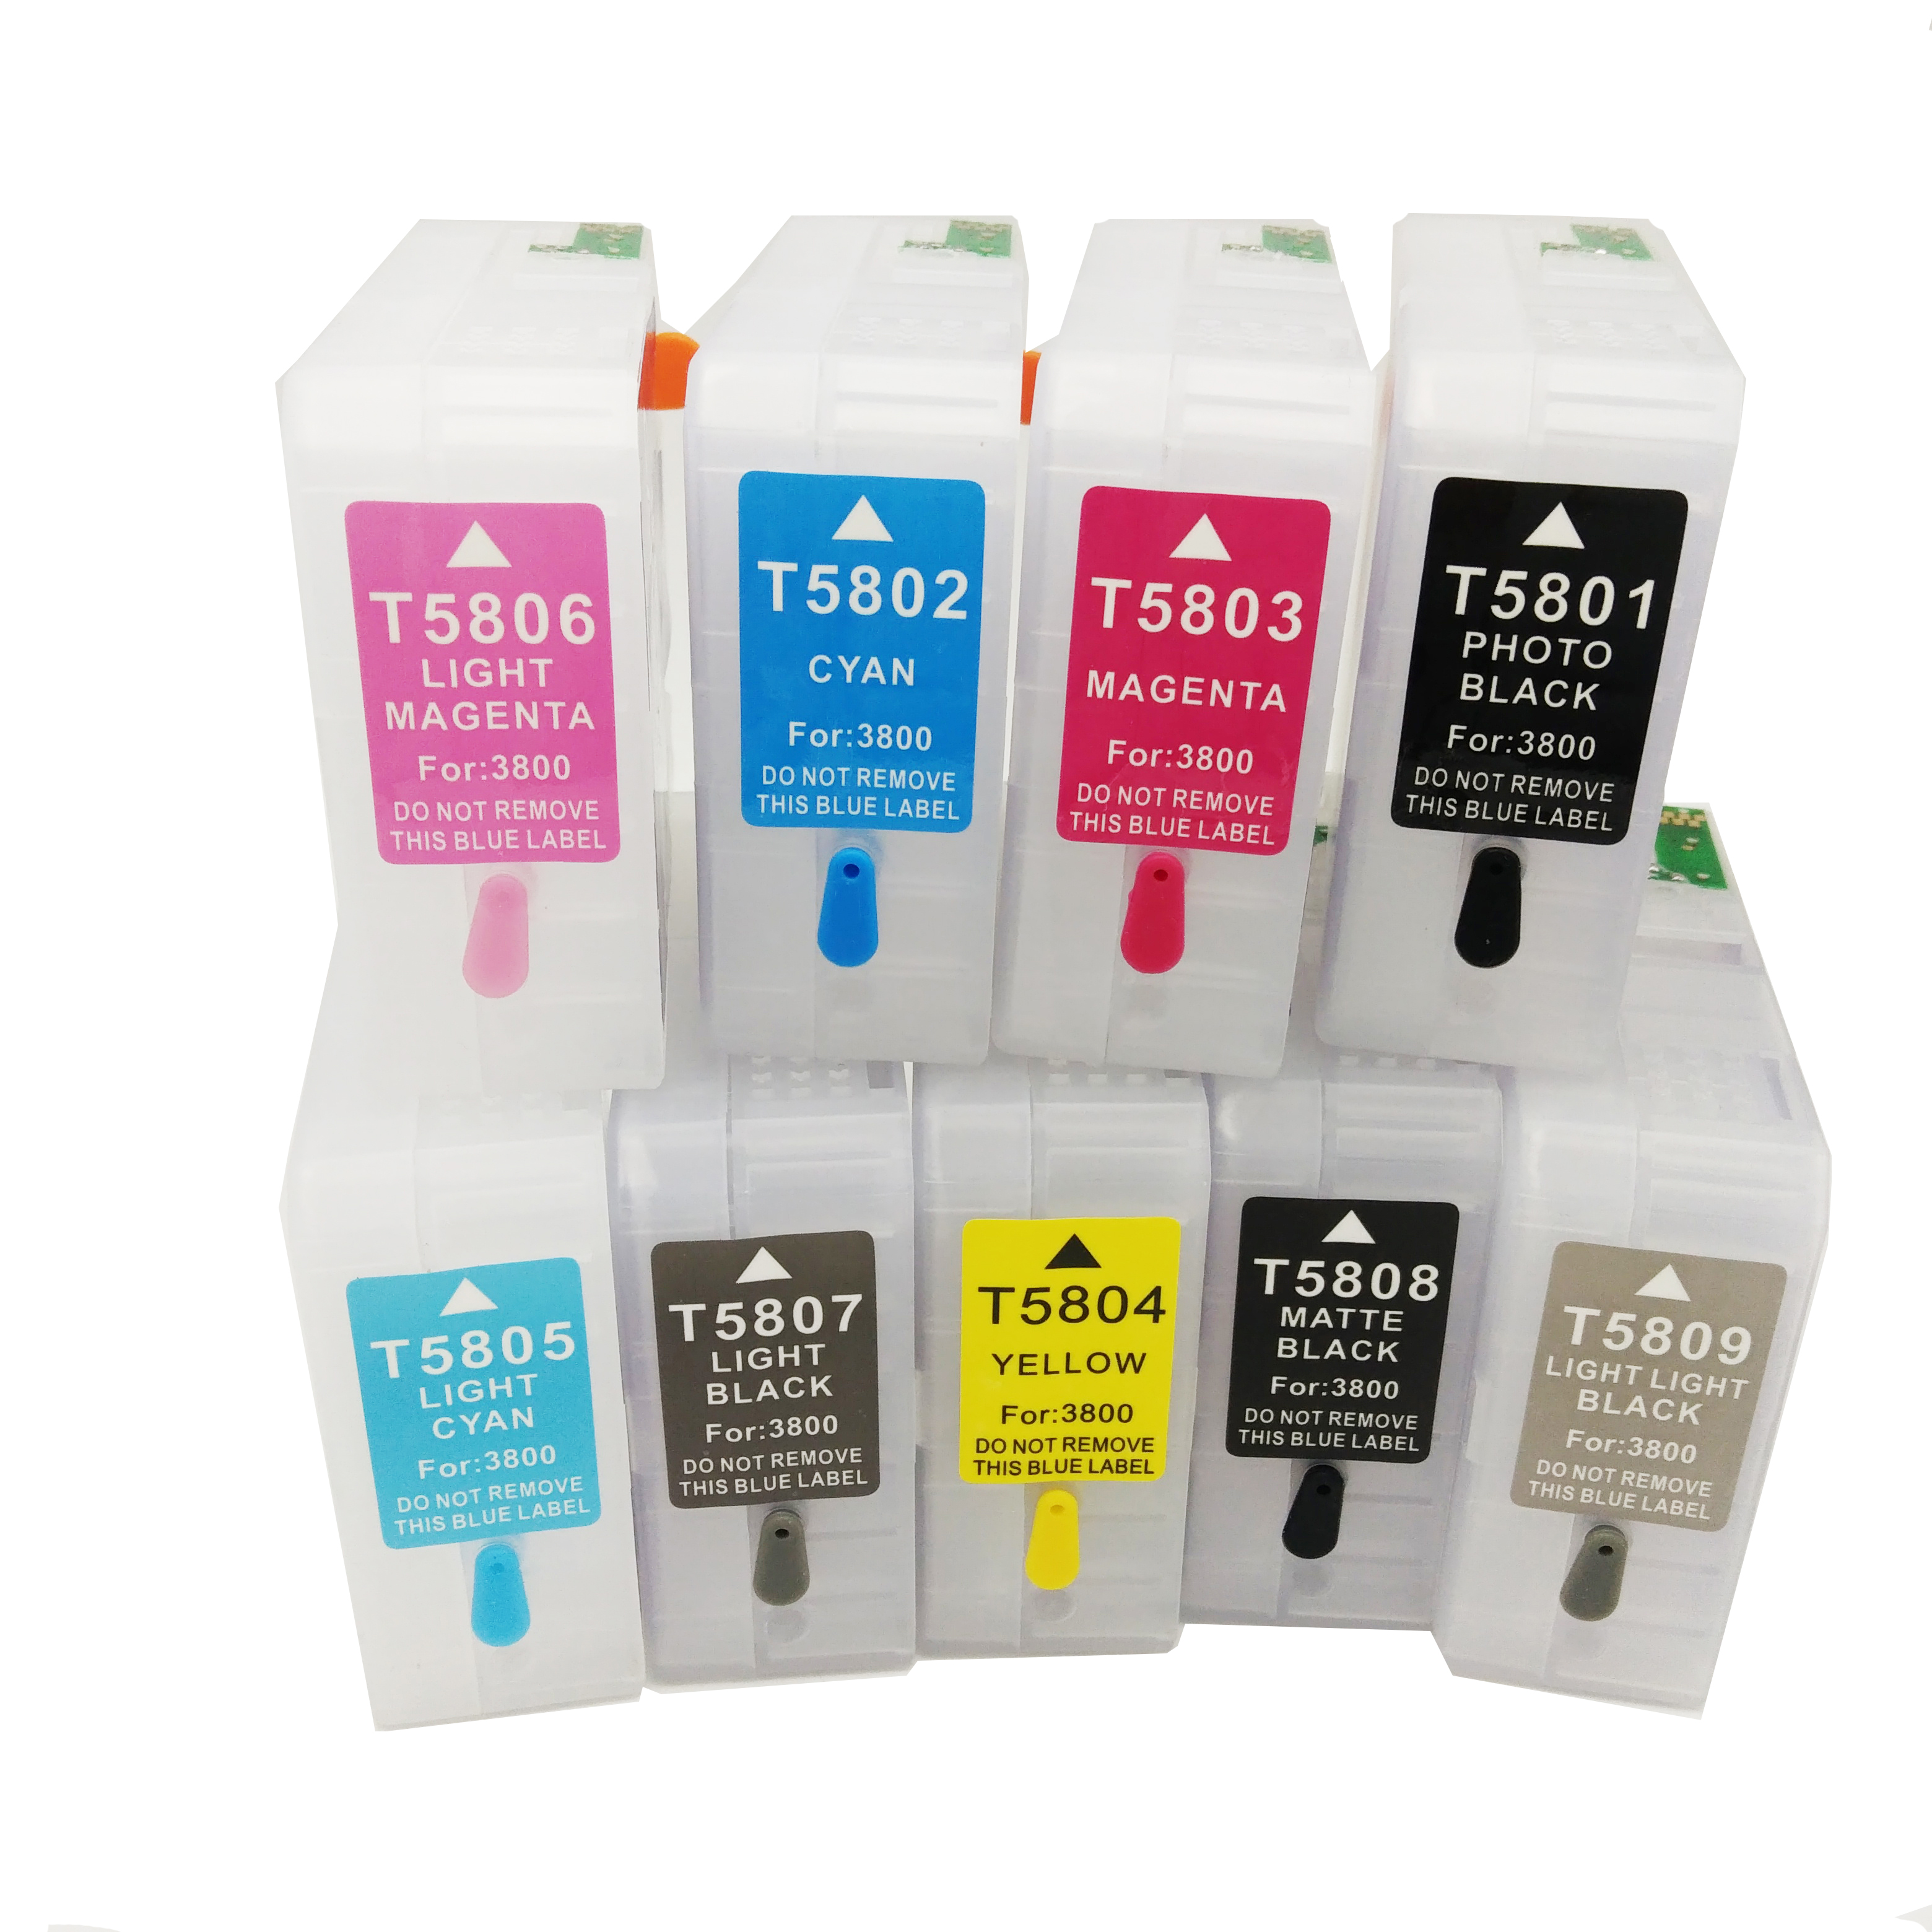 T5801 T5802 T5803 T5804 T5805 T5806 T5807 T5808 T5809 For Epson Stylus Pro 3800 3880 Empty Refillable Ink Cartridge